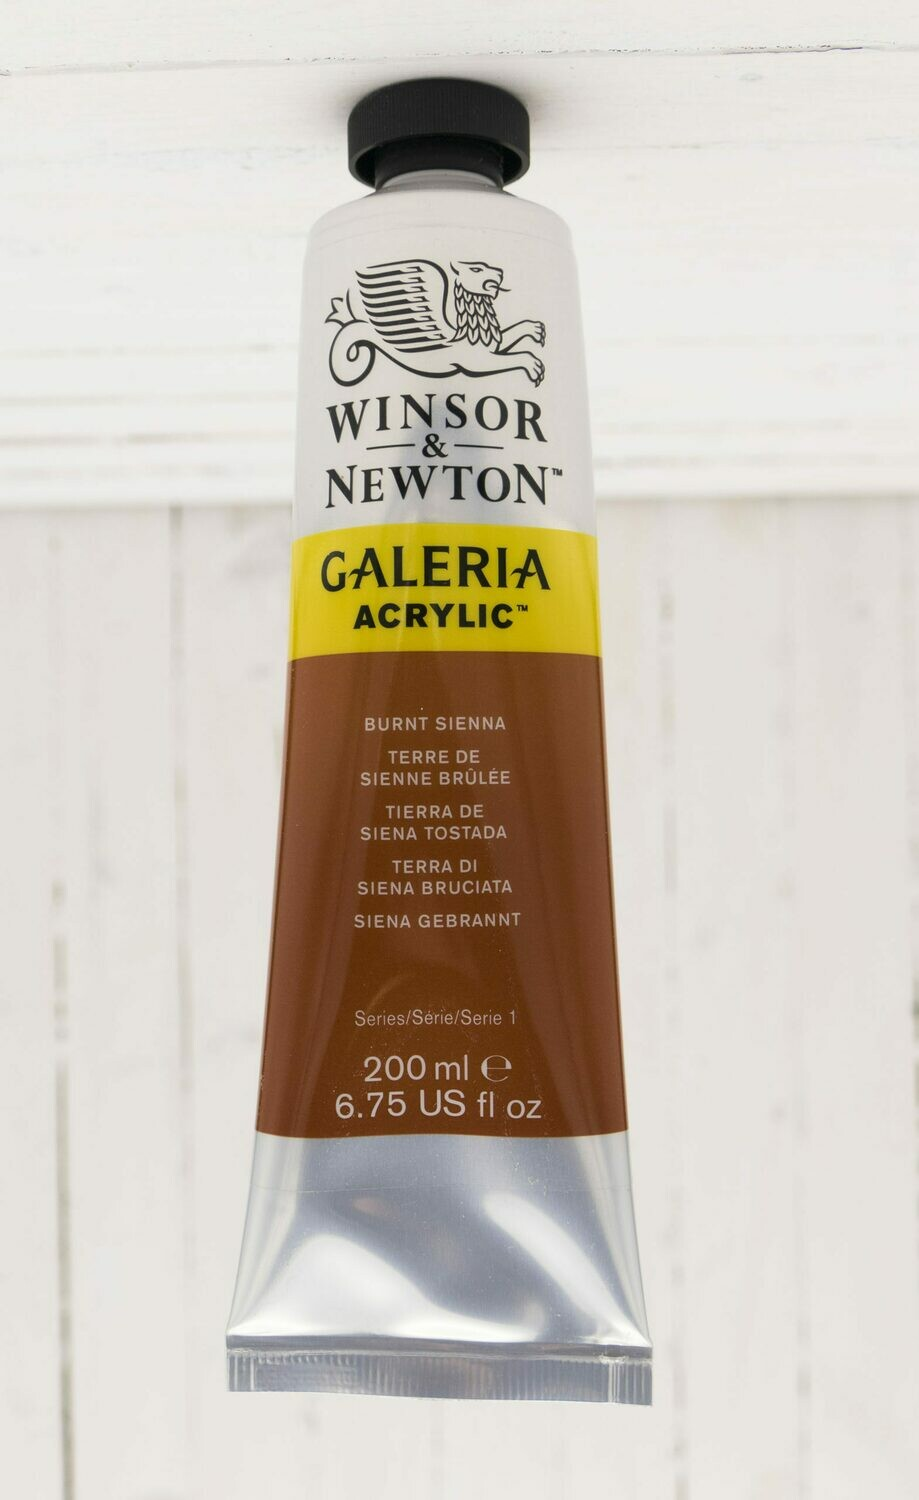 Winsor & Newton Galeria Acrylic 200 ml tube Burnt Sienna